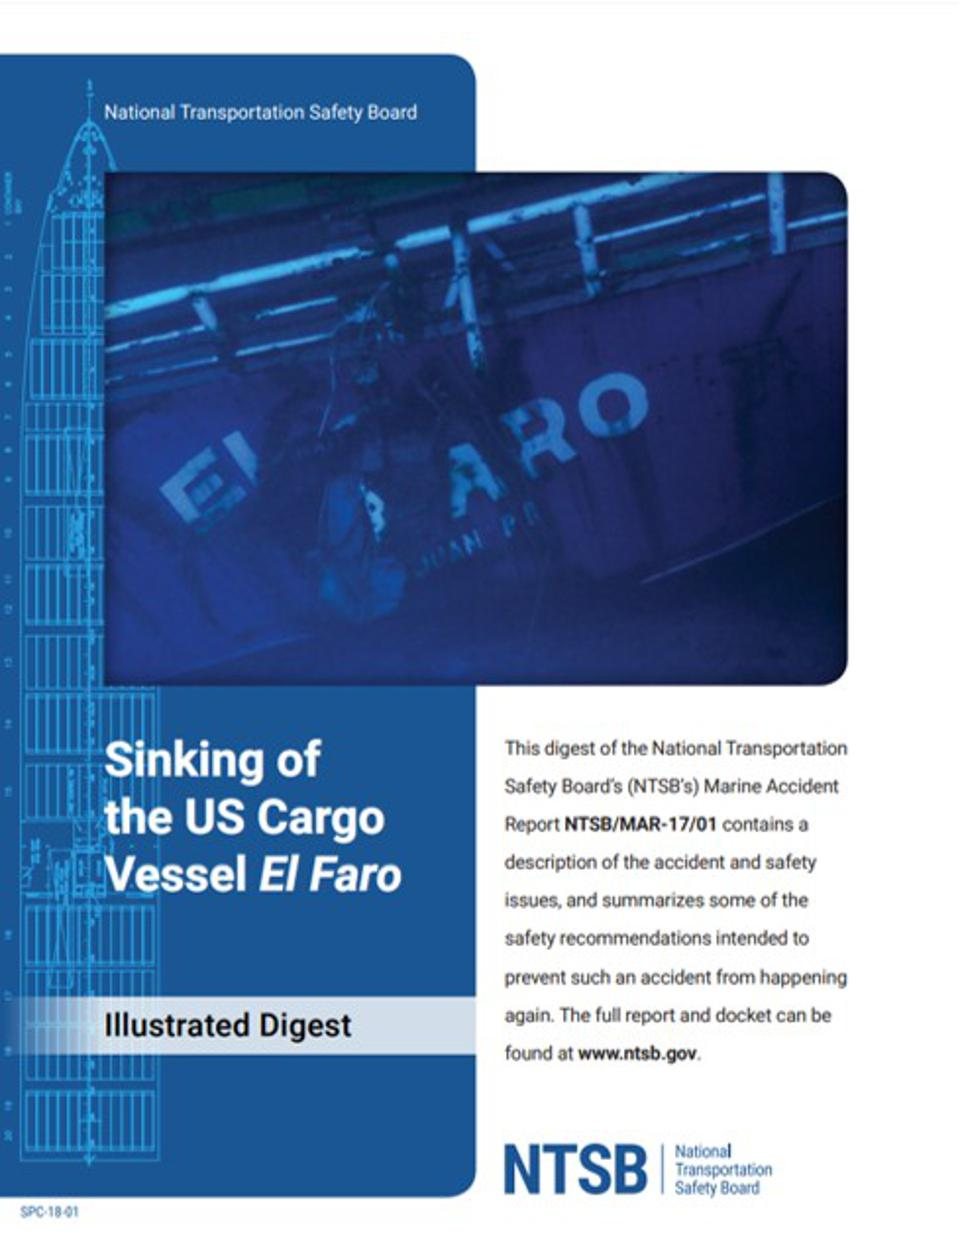 The 16 page illustrated digest of the Sinking of the US Cargo Vessel El Faro